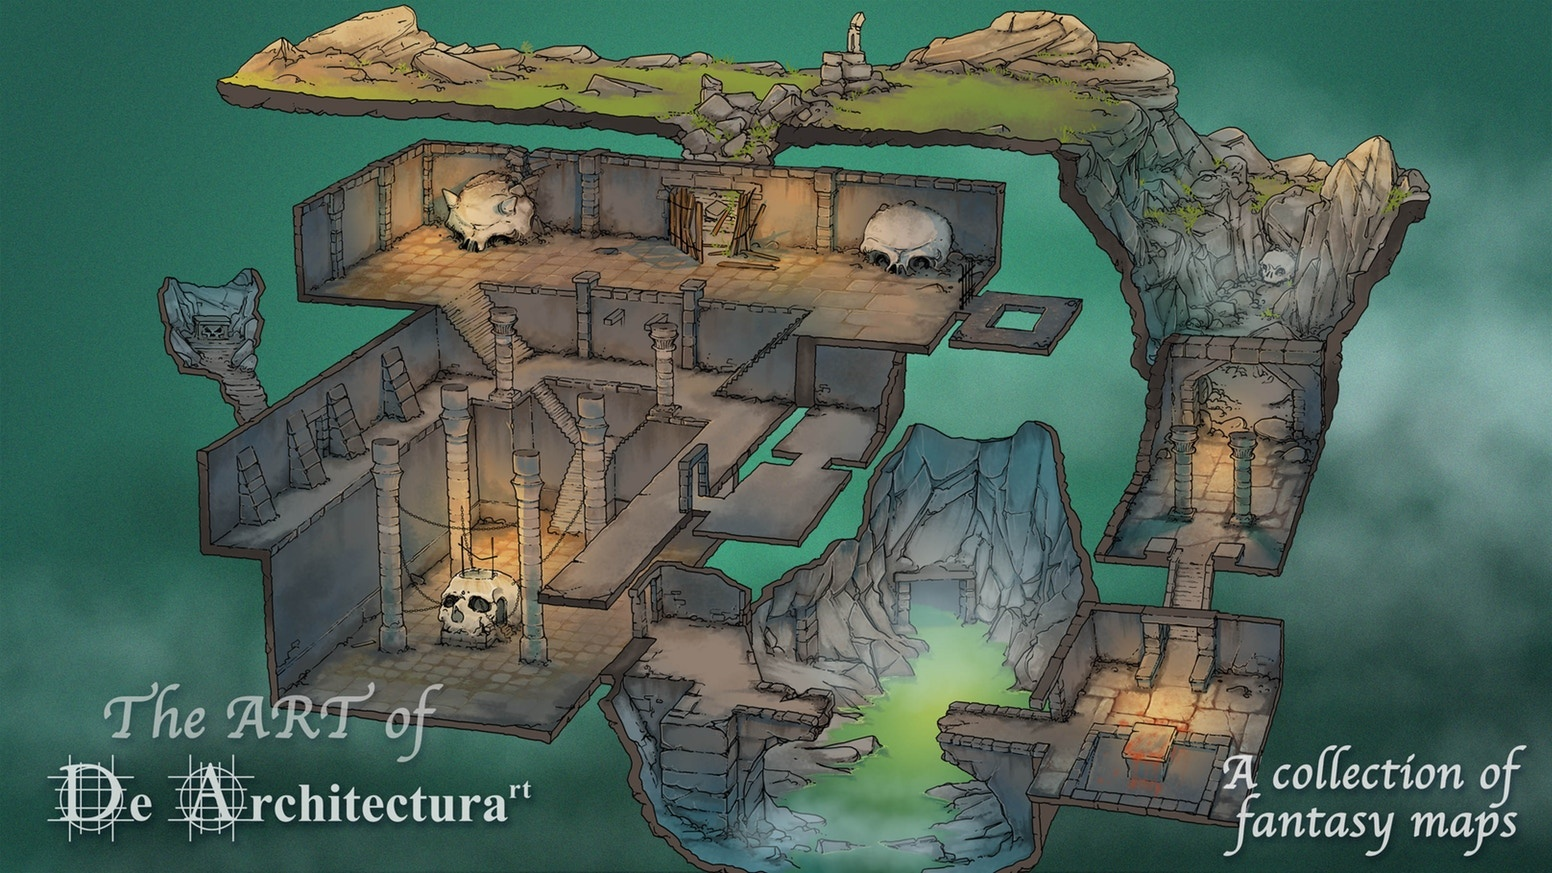 De Architecturart A COLLECTION OF FANTASY MAP